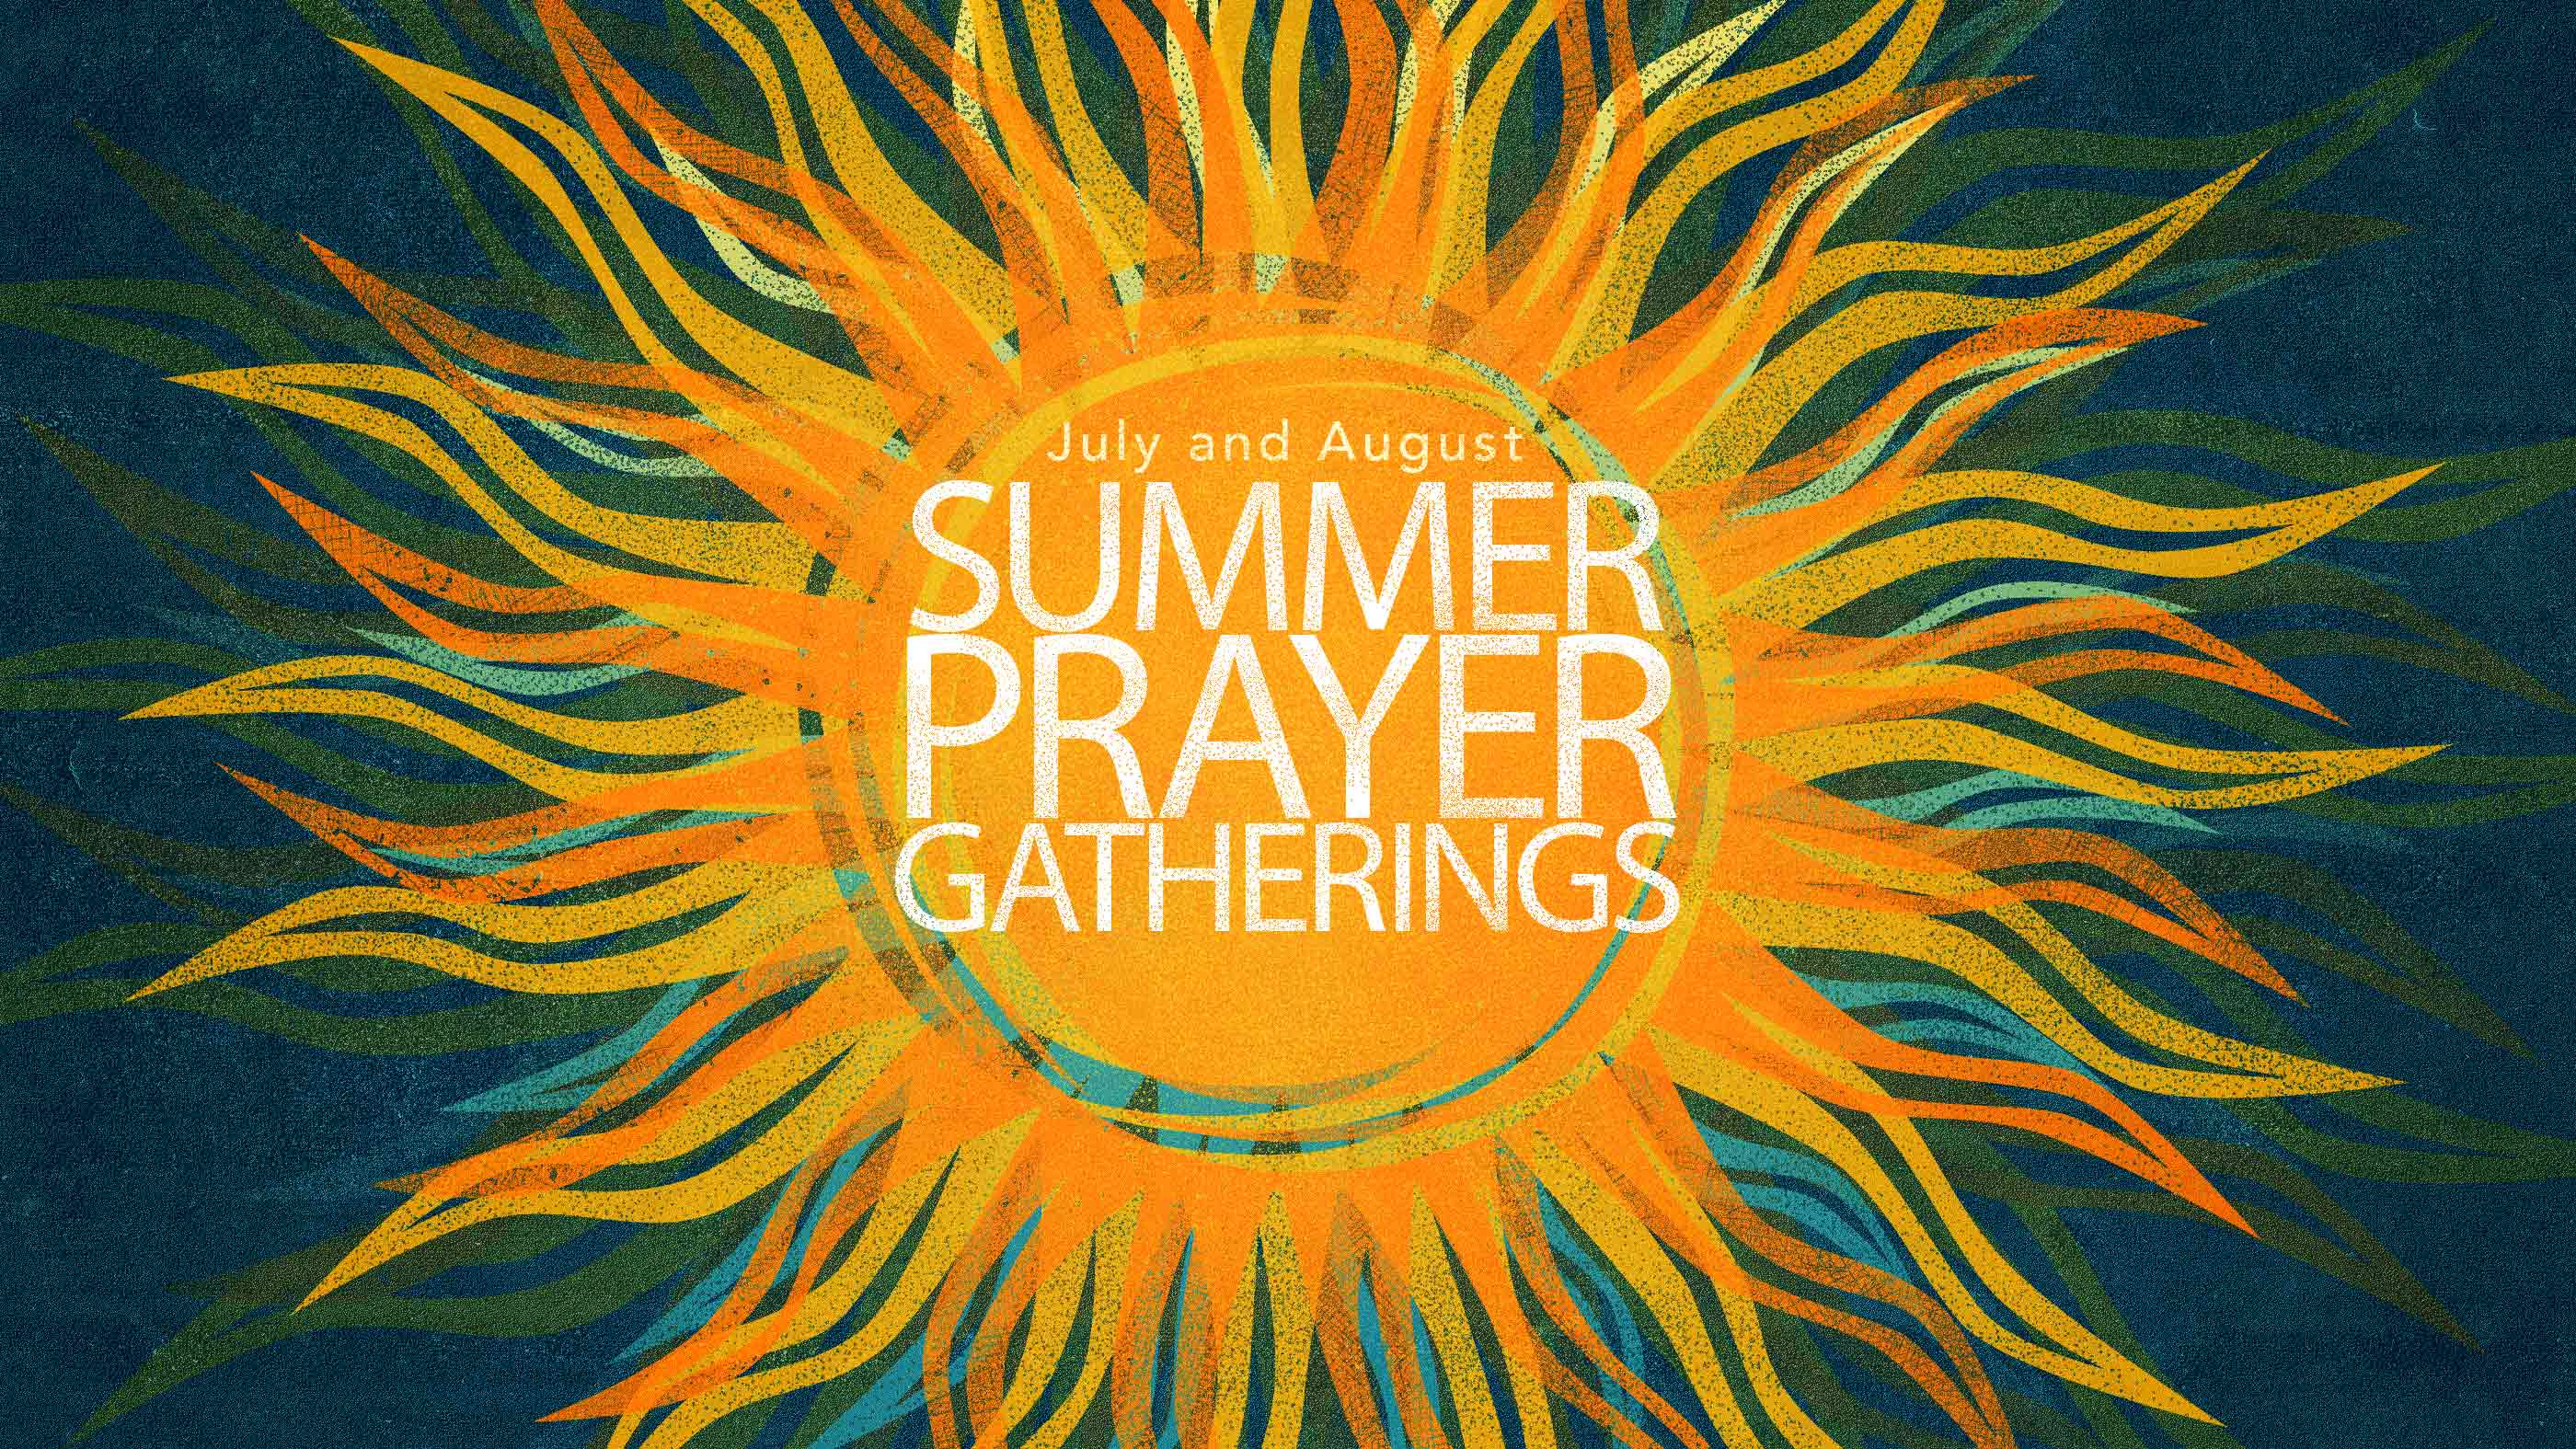 Summer-Prayer-Gatherings-2018-(web-event-featured-image) image